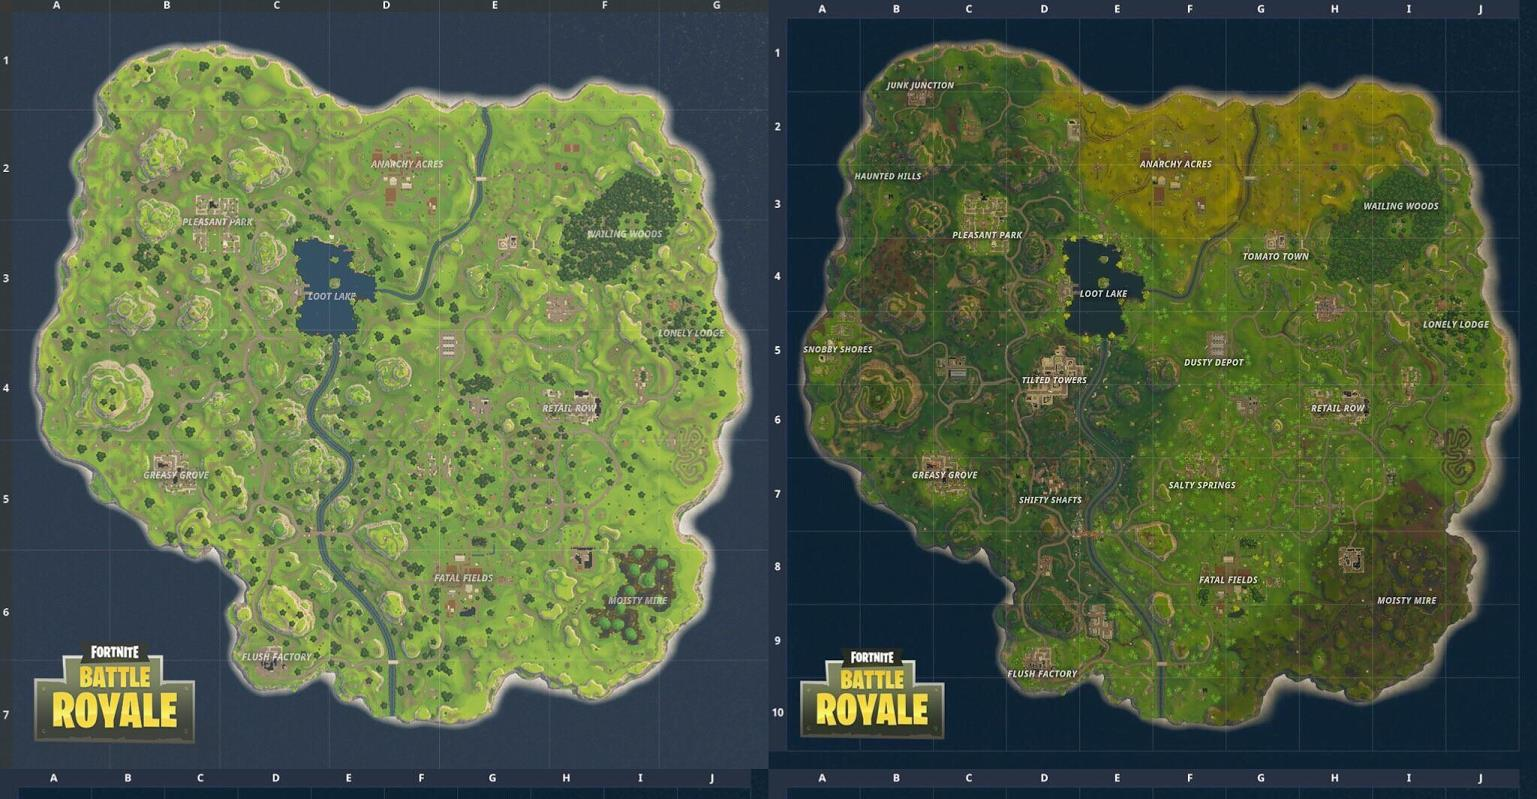 Where Is The Underground Mine And Other New Locations?